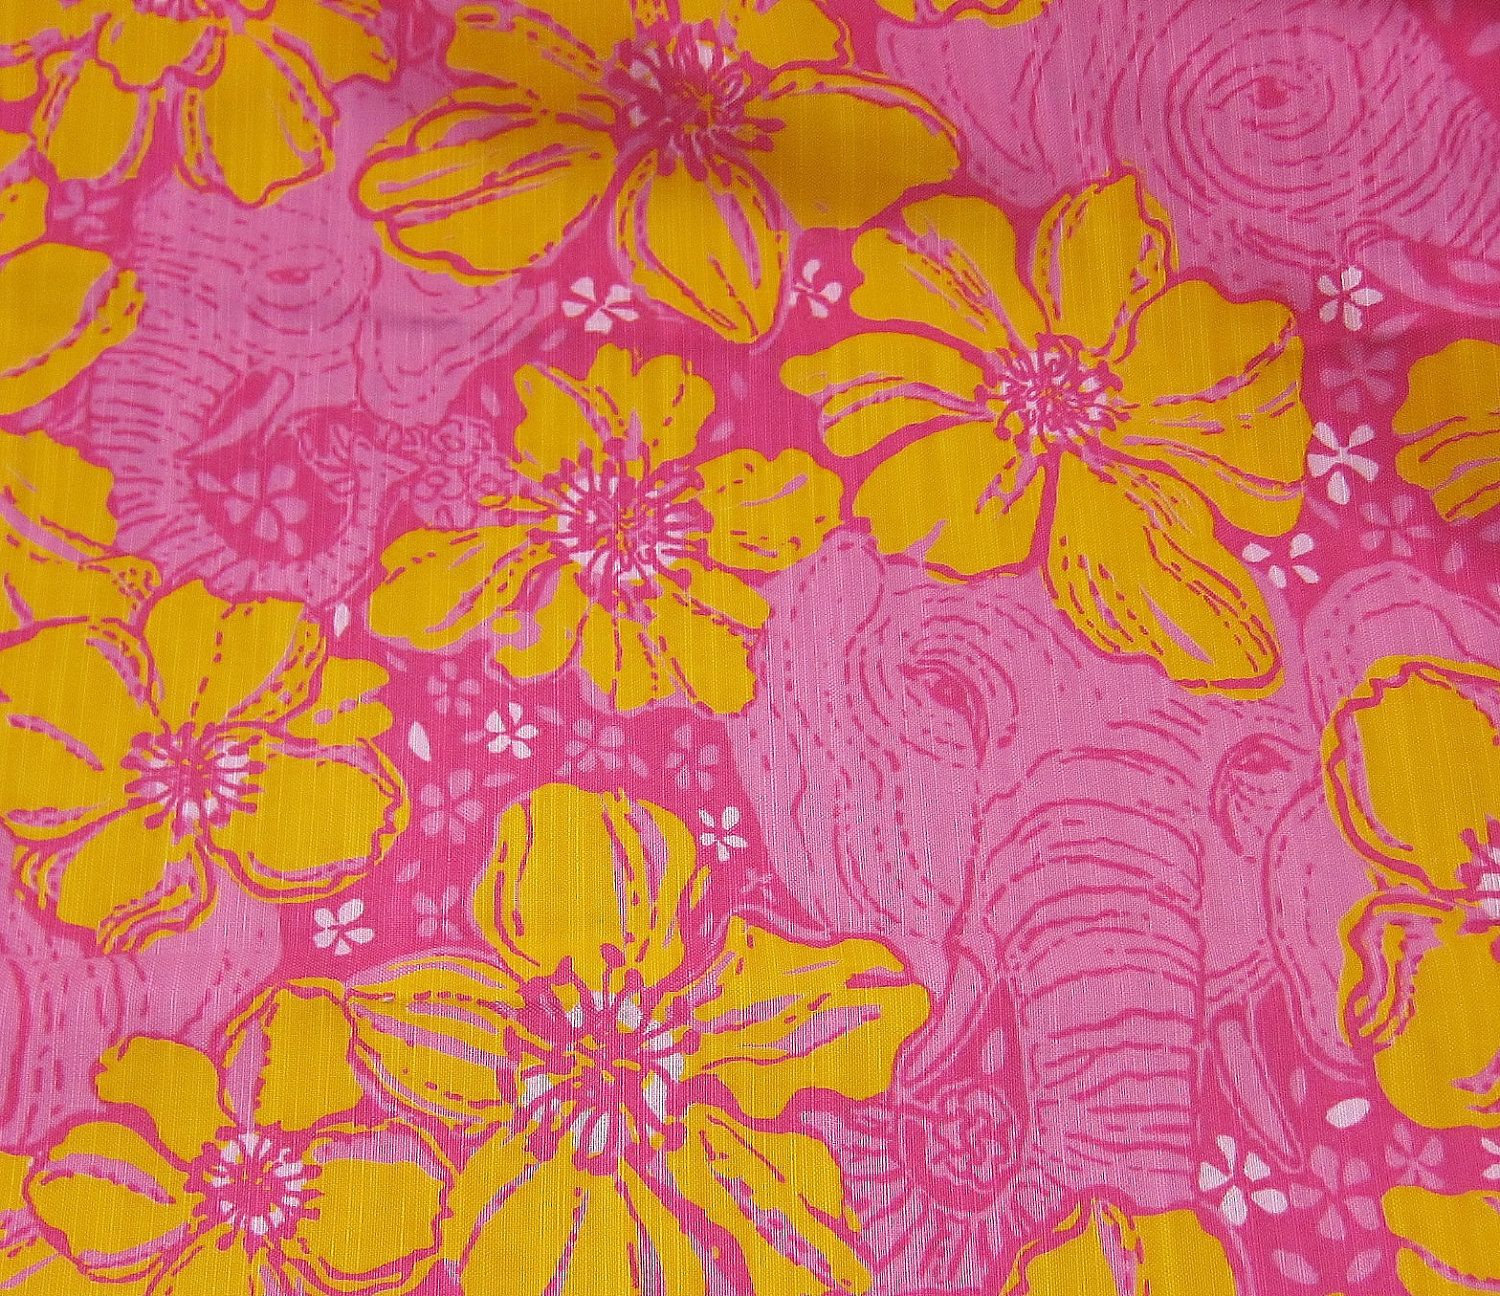 Lilly Pulitzer Fabric Authentic New Lilly Pulitzer Fabric Ten Ton Bouquet 18 X 18 Inches